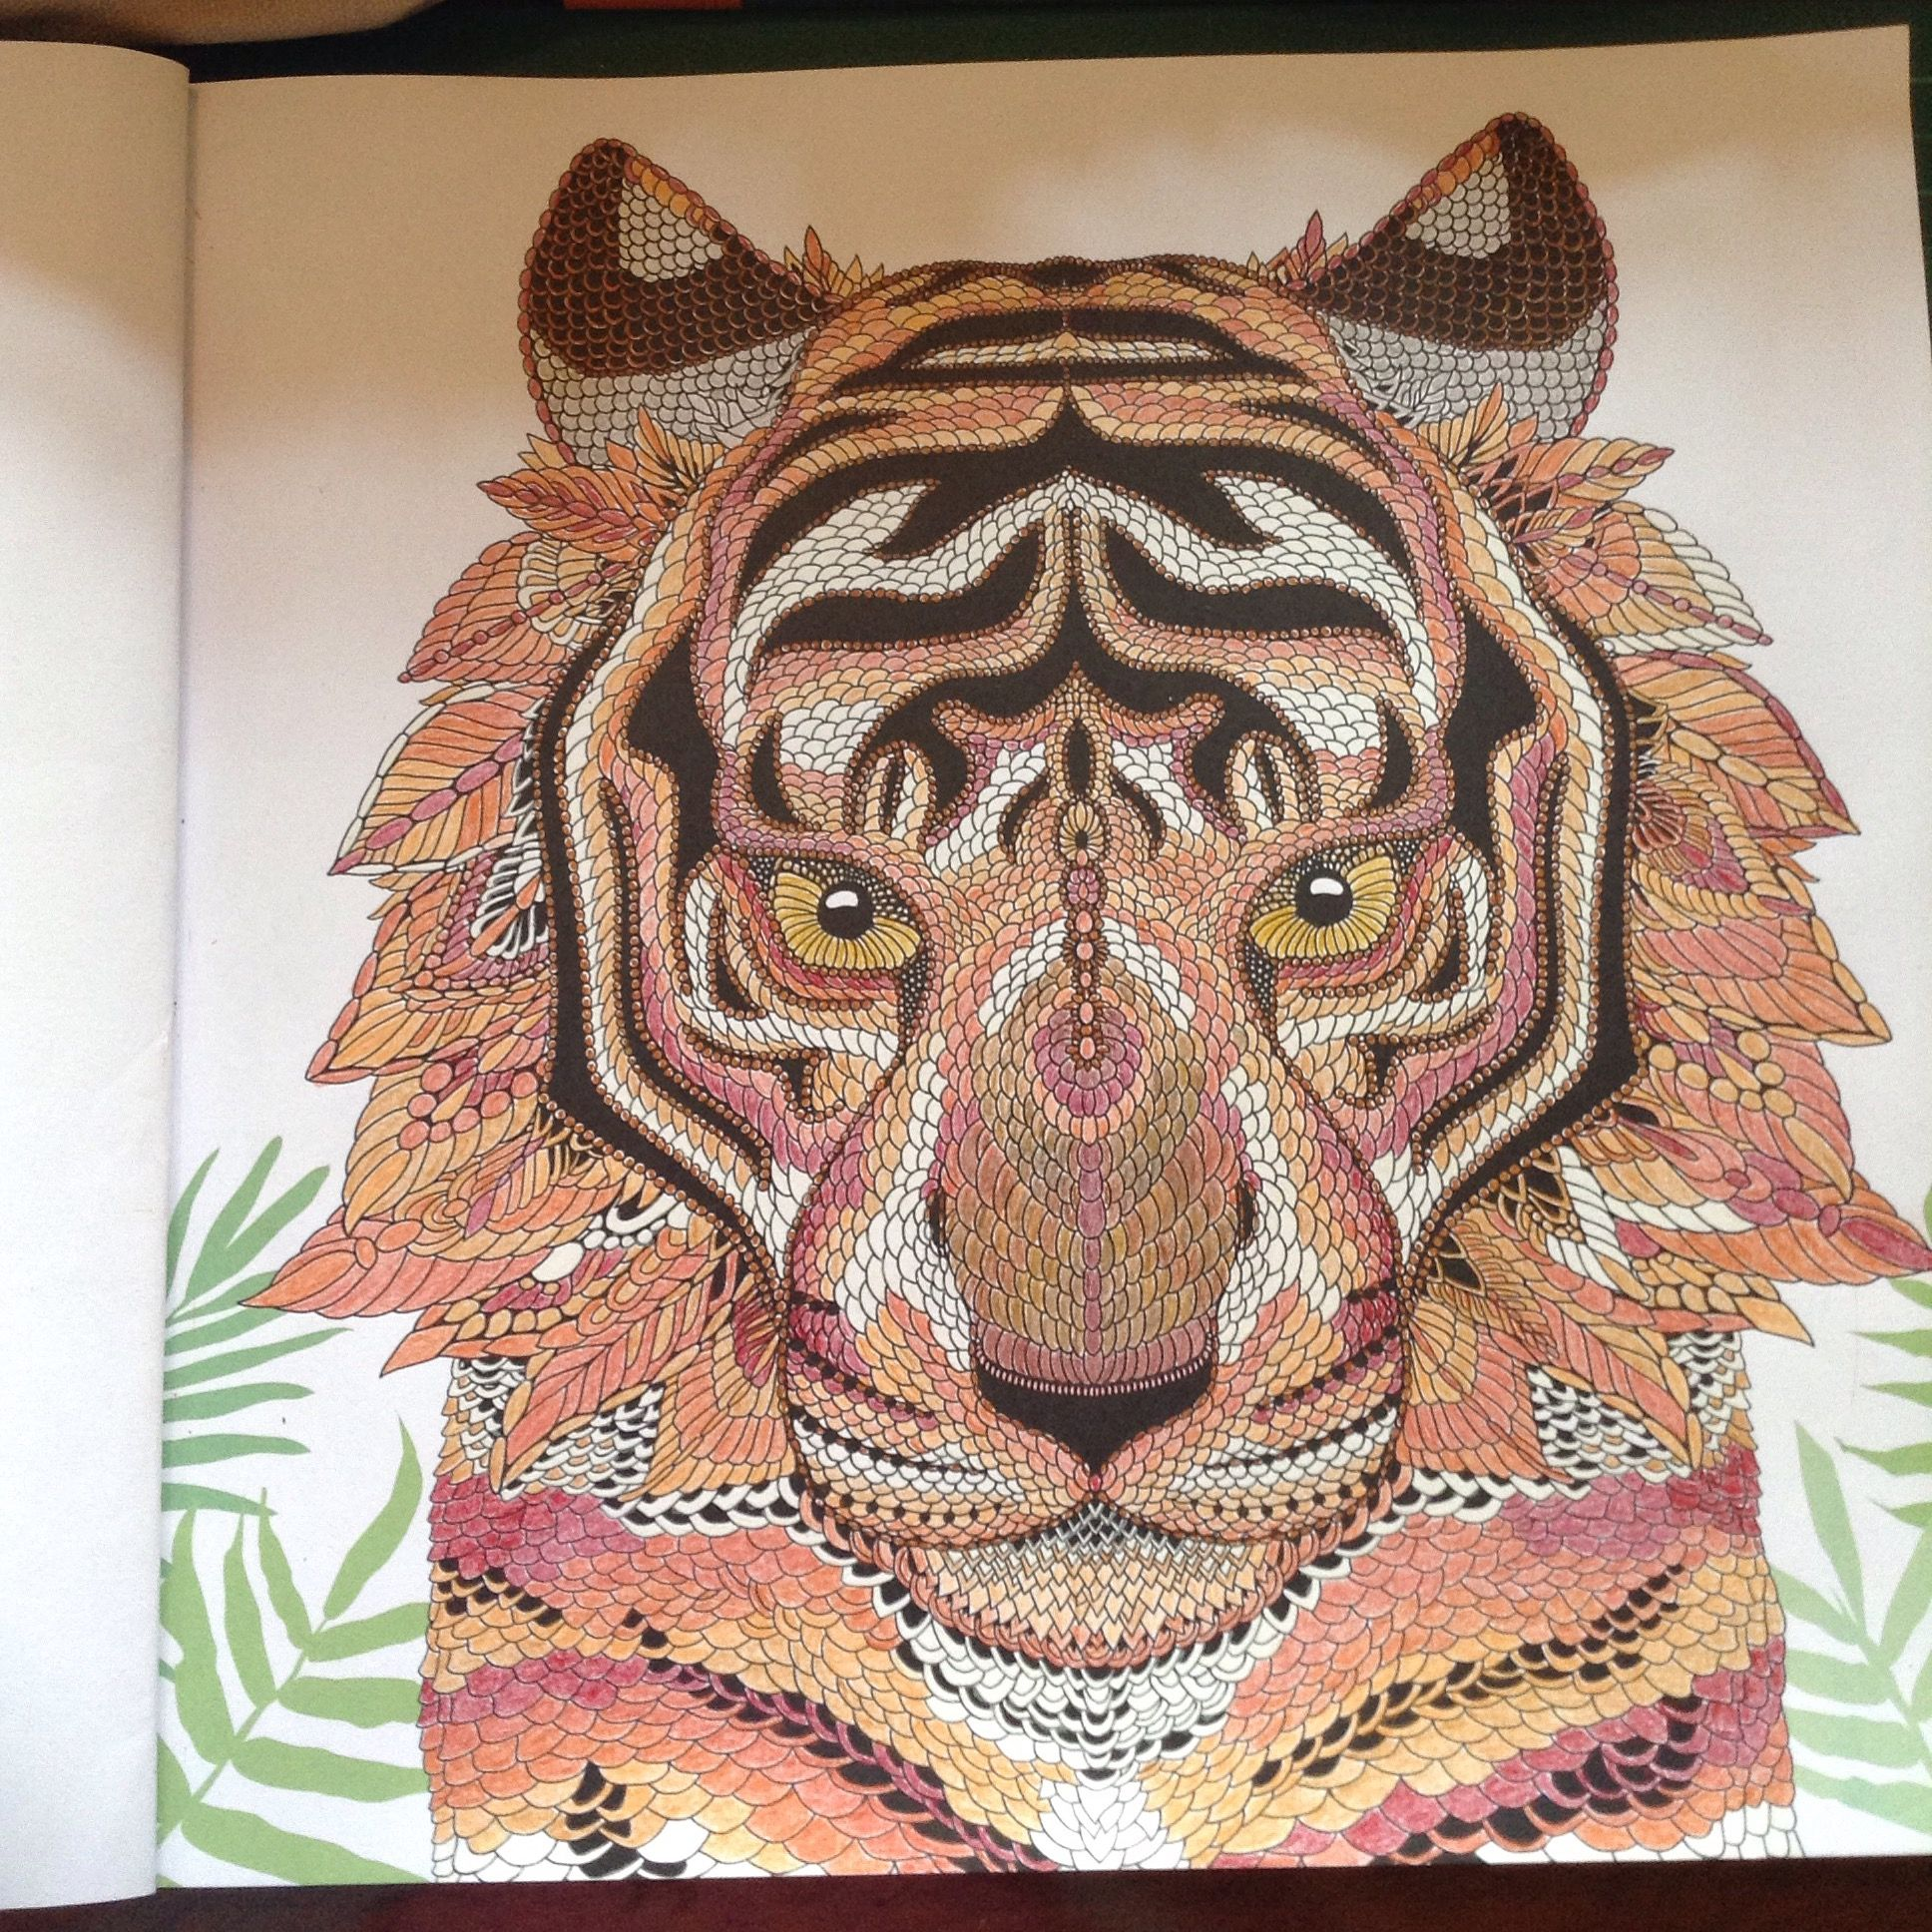 The Tiger From The Menagerie Colouring Book Animal Coloring Books Coloring Books Mindfulness Colouring